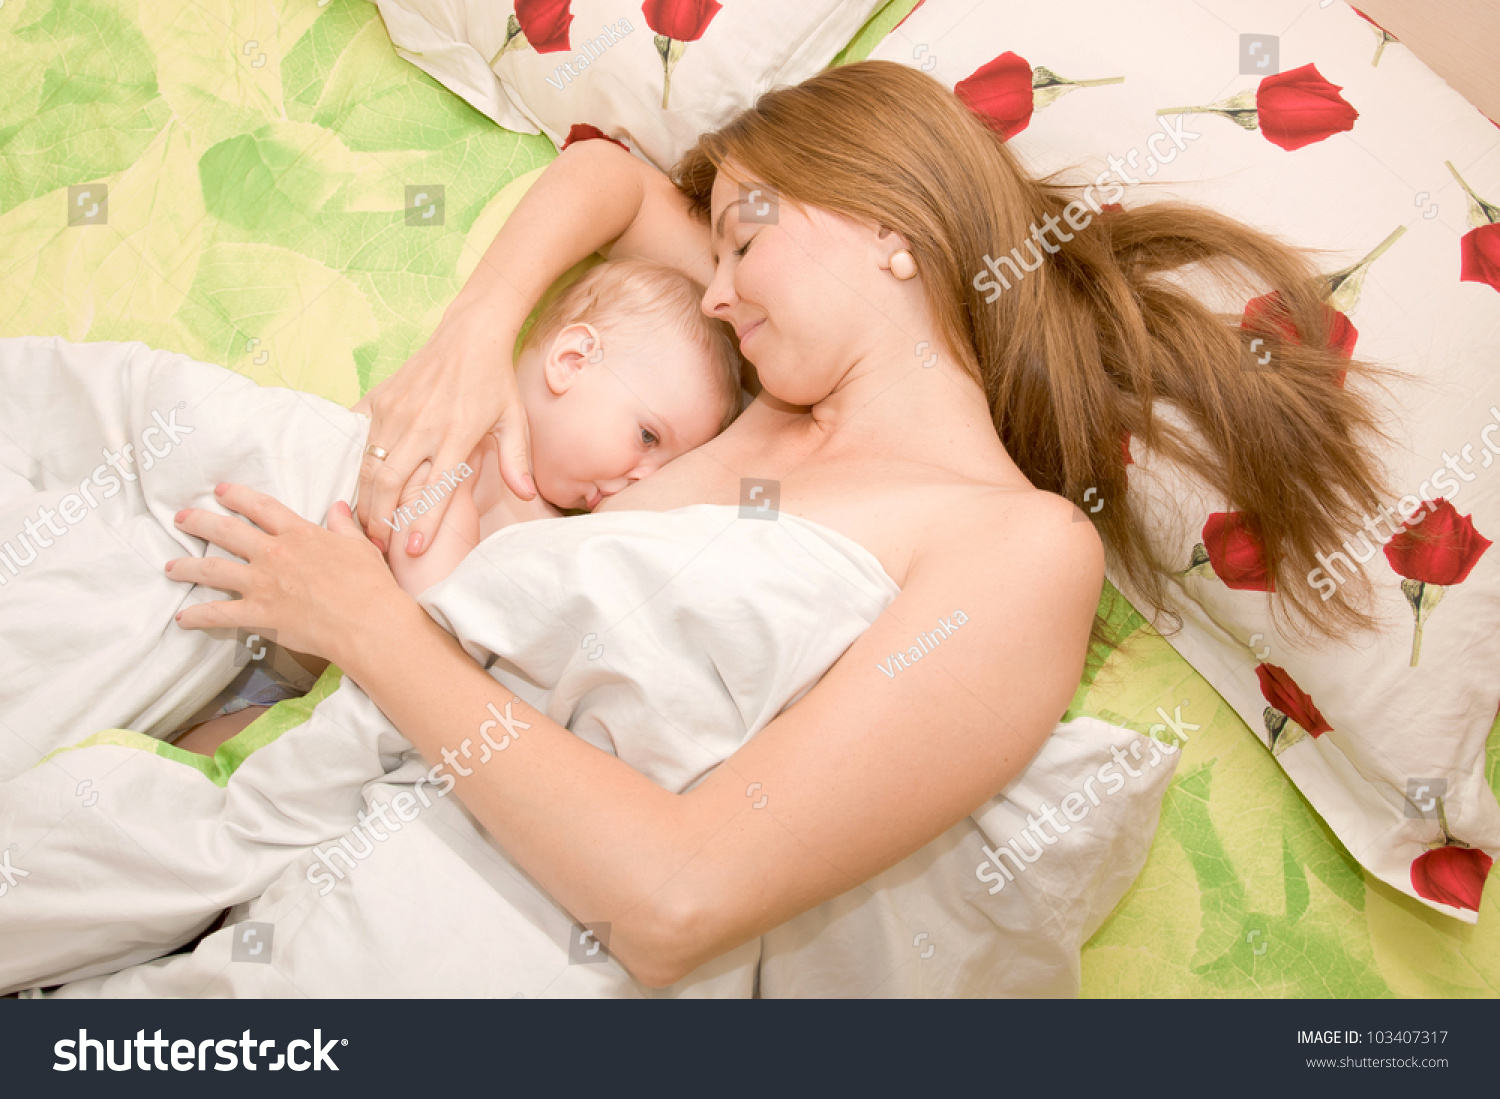 mother baby relationship breastfeeding sore